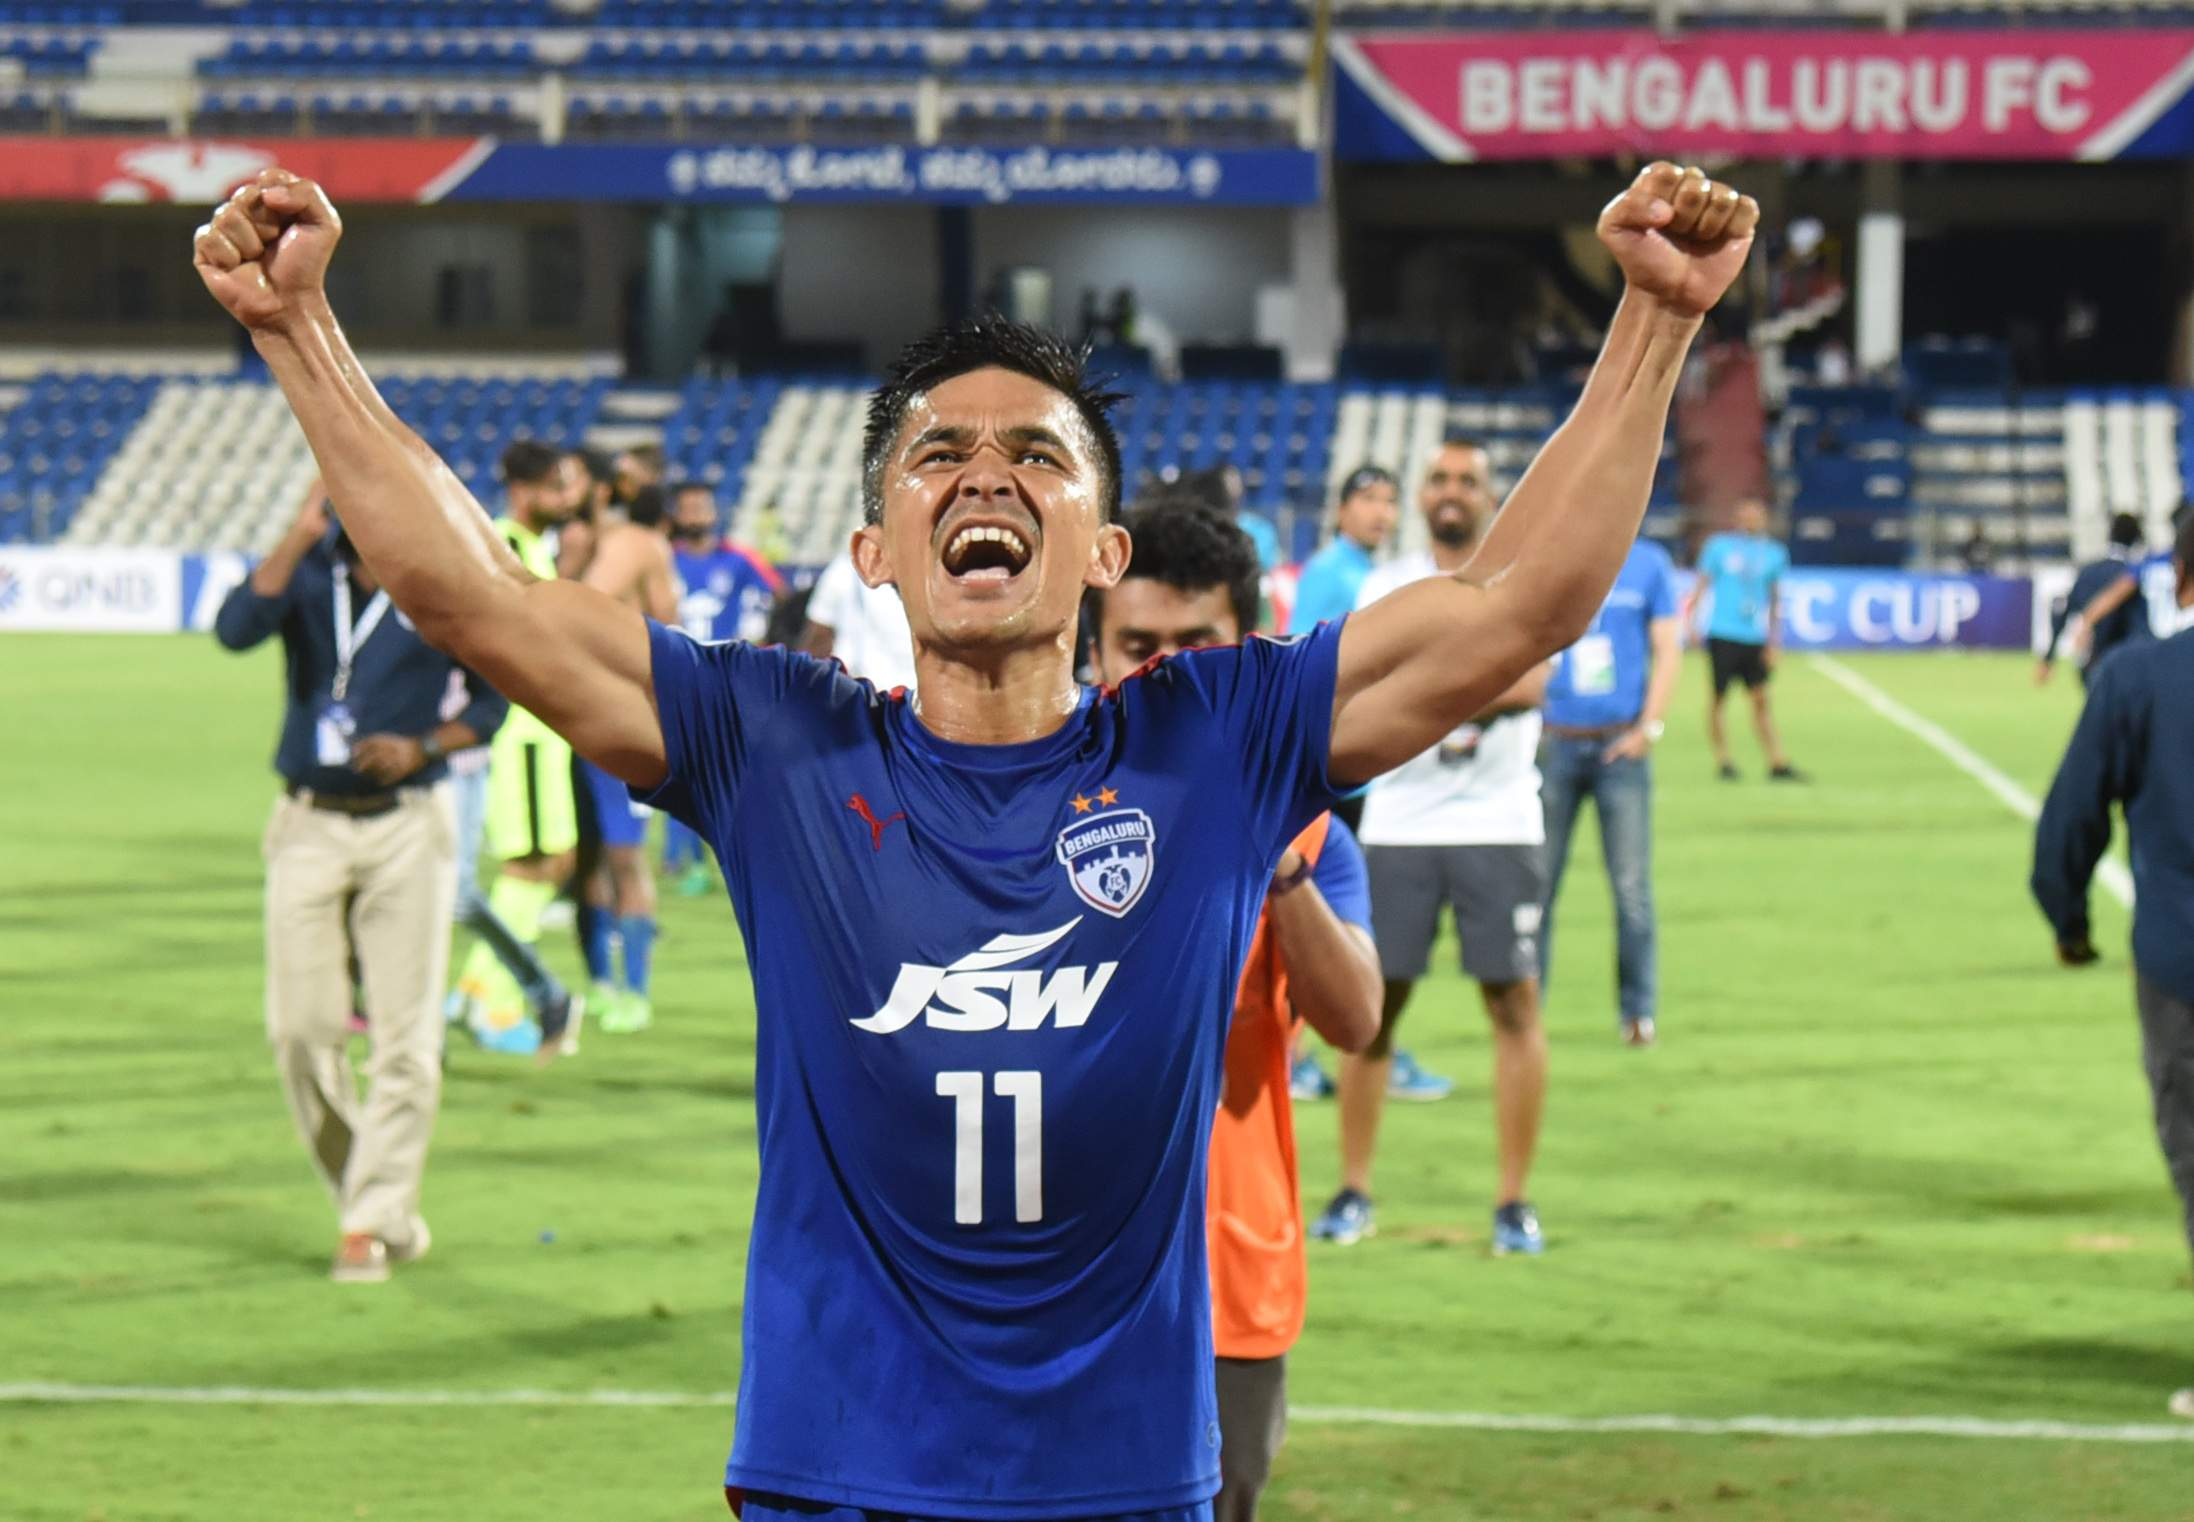 5 Super Facts That You Didn't Know About The Indian Footballer Sunil Chhetri